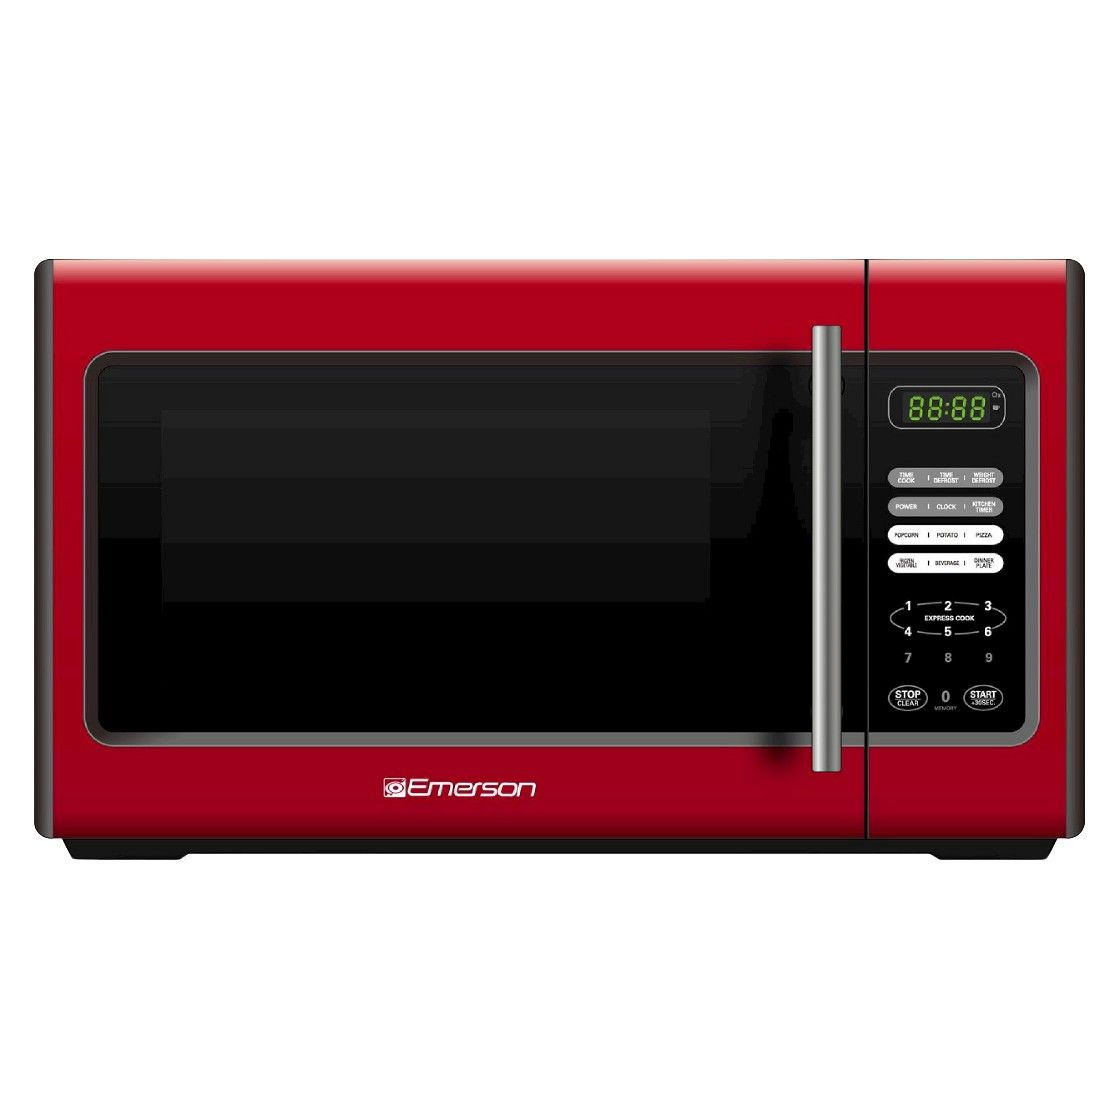 Microwave Perfect For Cooking The Finest Dorm Room Cuisine Frozen Dinners Reheating Leftovers Popcorn Etc Emerson Oven Red